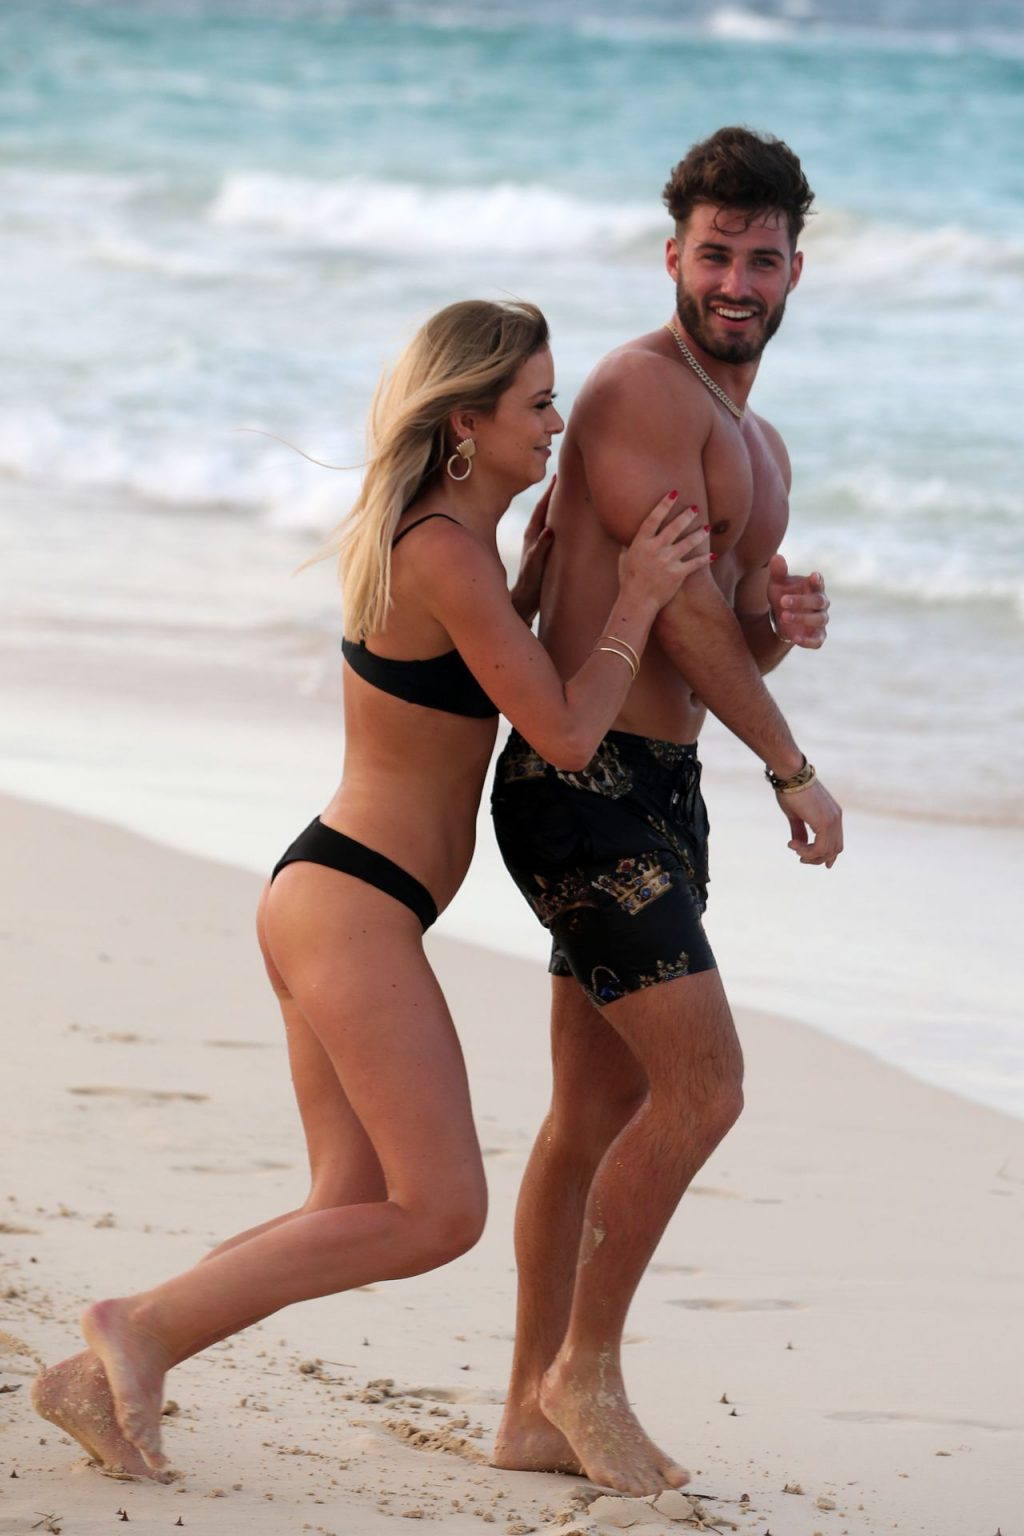 Olivia Bentley Sexy The Fappening Blog 3 1024x1536 - Olivia Bentley and Joshua Ritchie Enjoy Their Vacation in Punta Cuna (26 Photos)